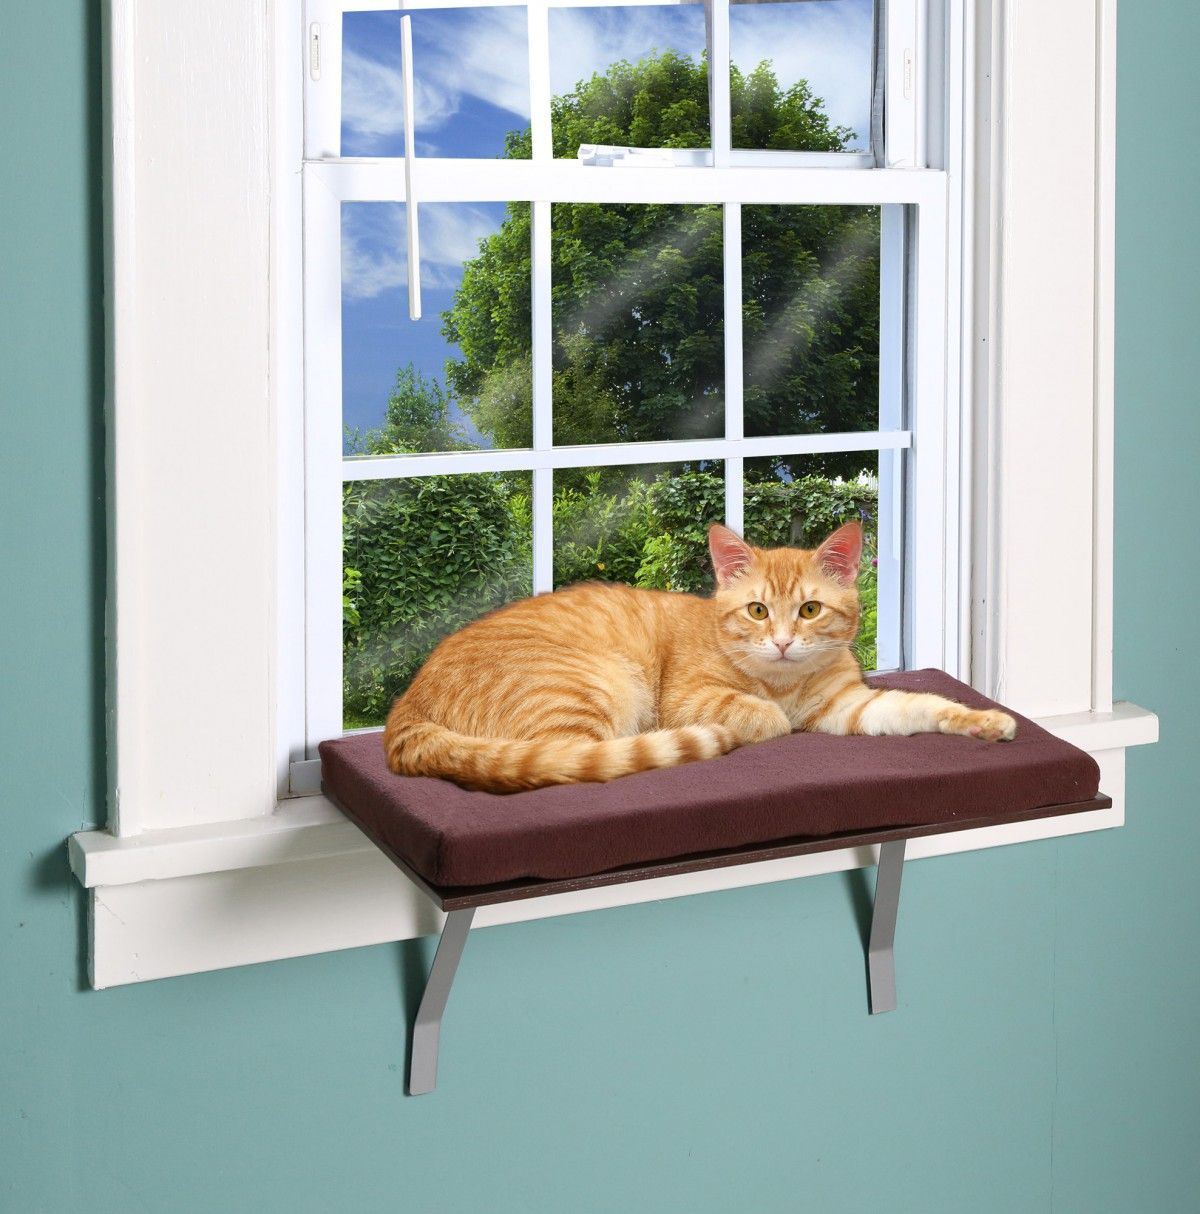 Etna Cat Window Seat Bed Perch Ledge Small To Large Cats Mounted Safe Resting Seat Brown Cat Window Perch Cat Window Cat Perch